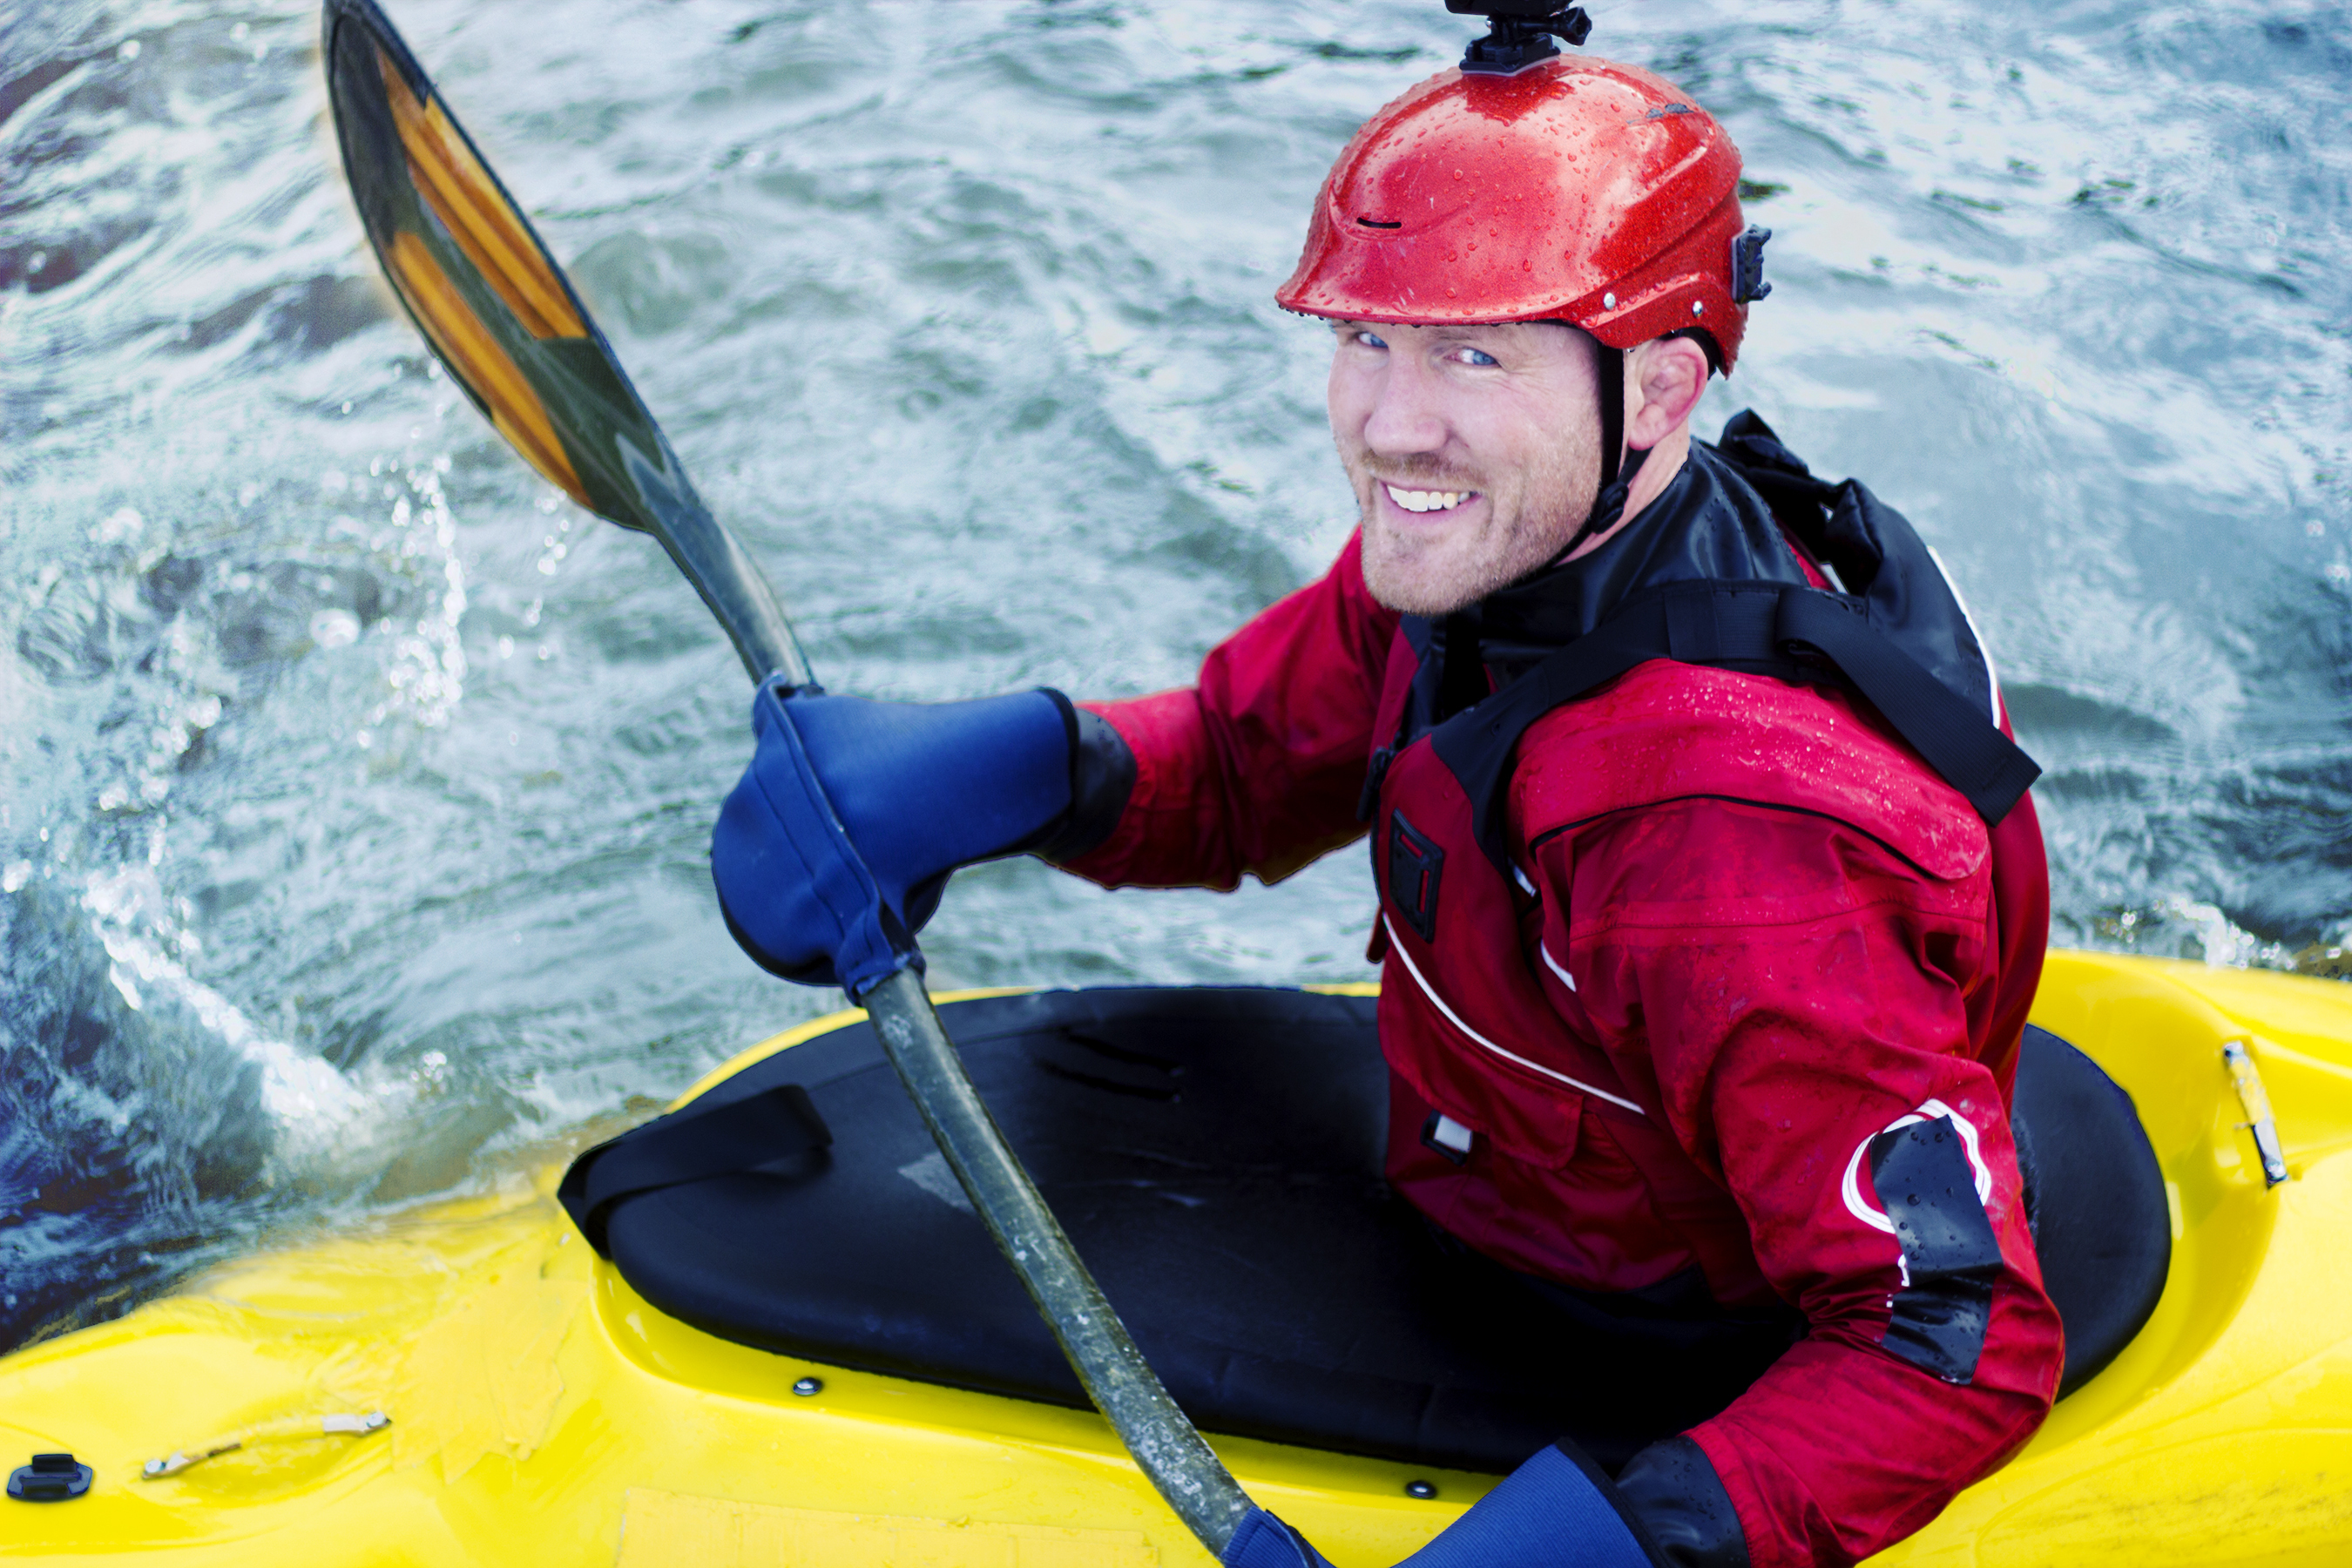 A Kayaker Smiling As He Goes Down a River